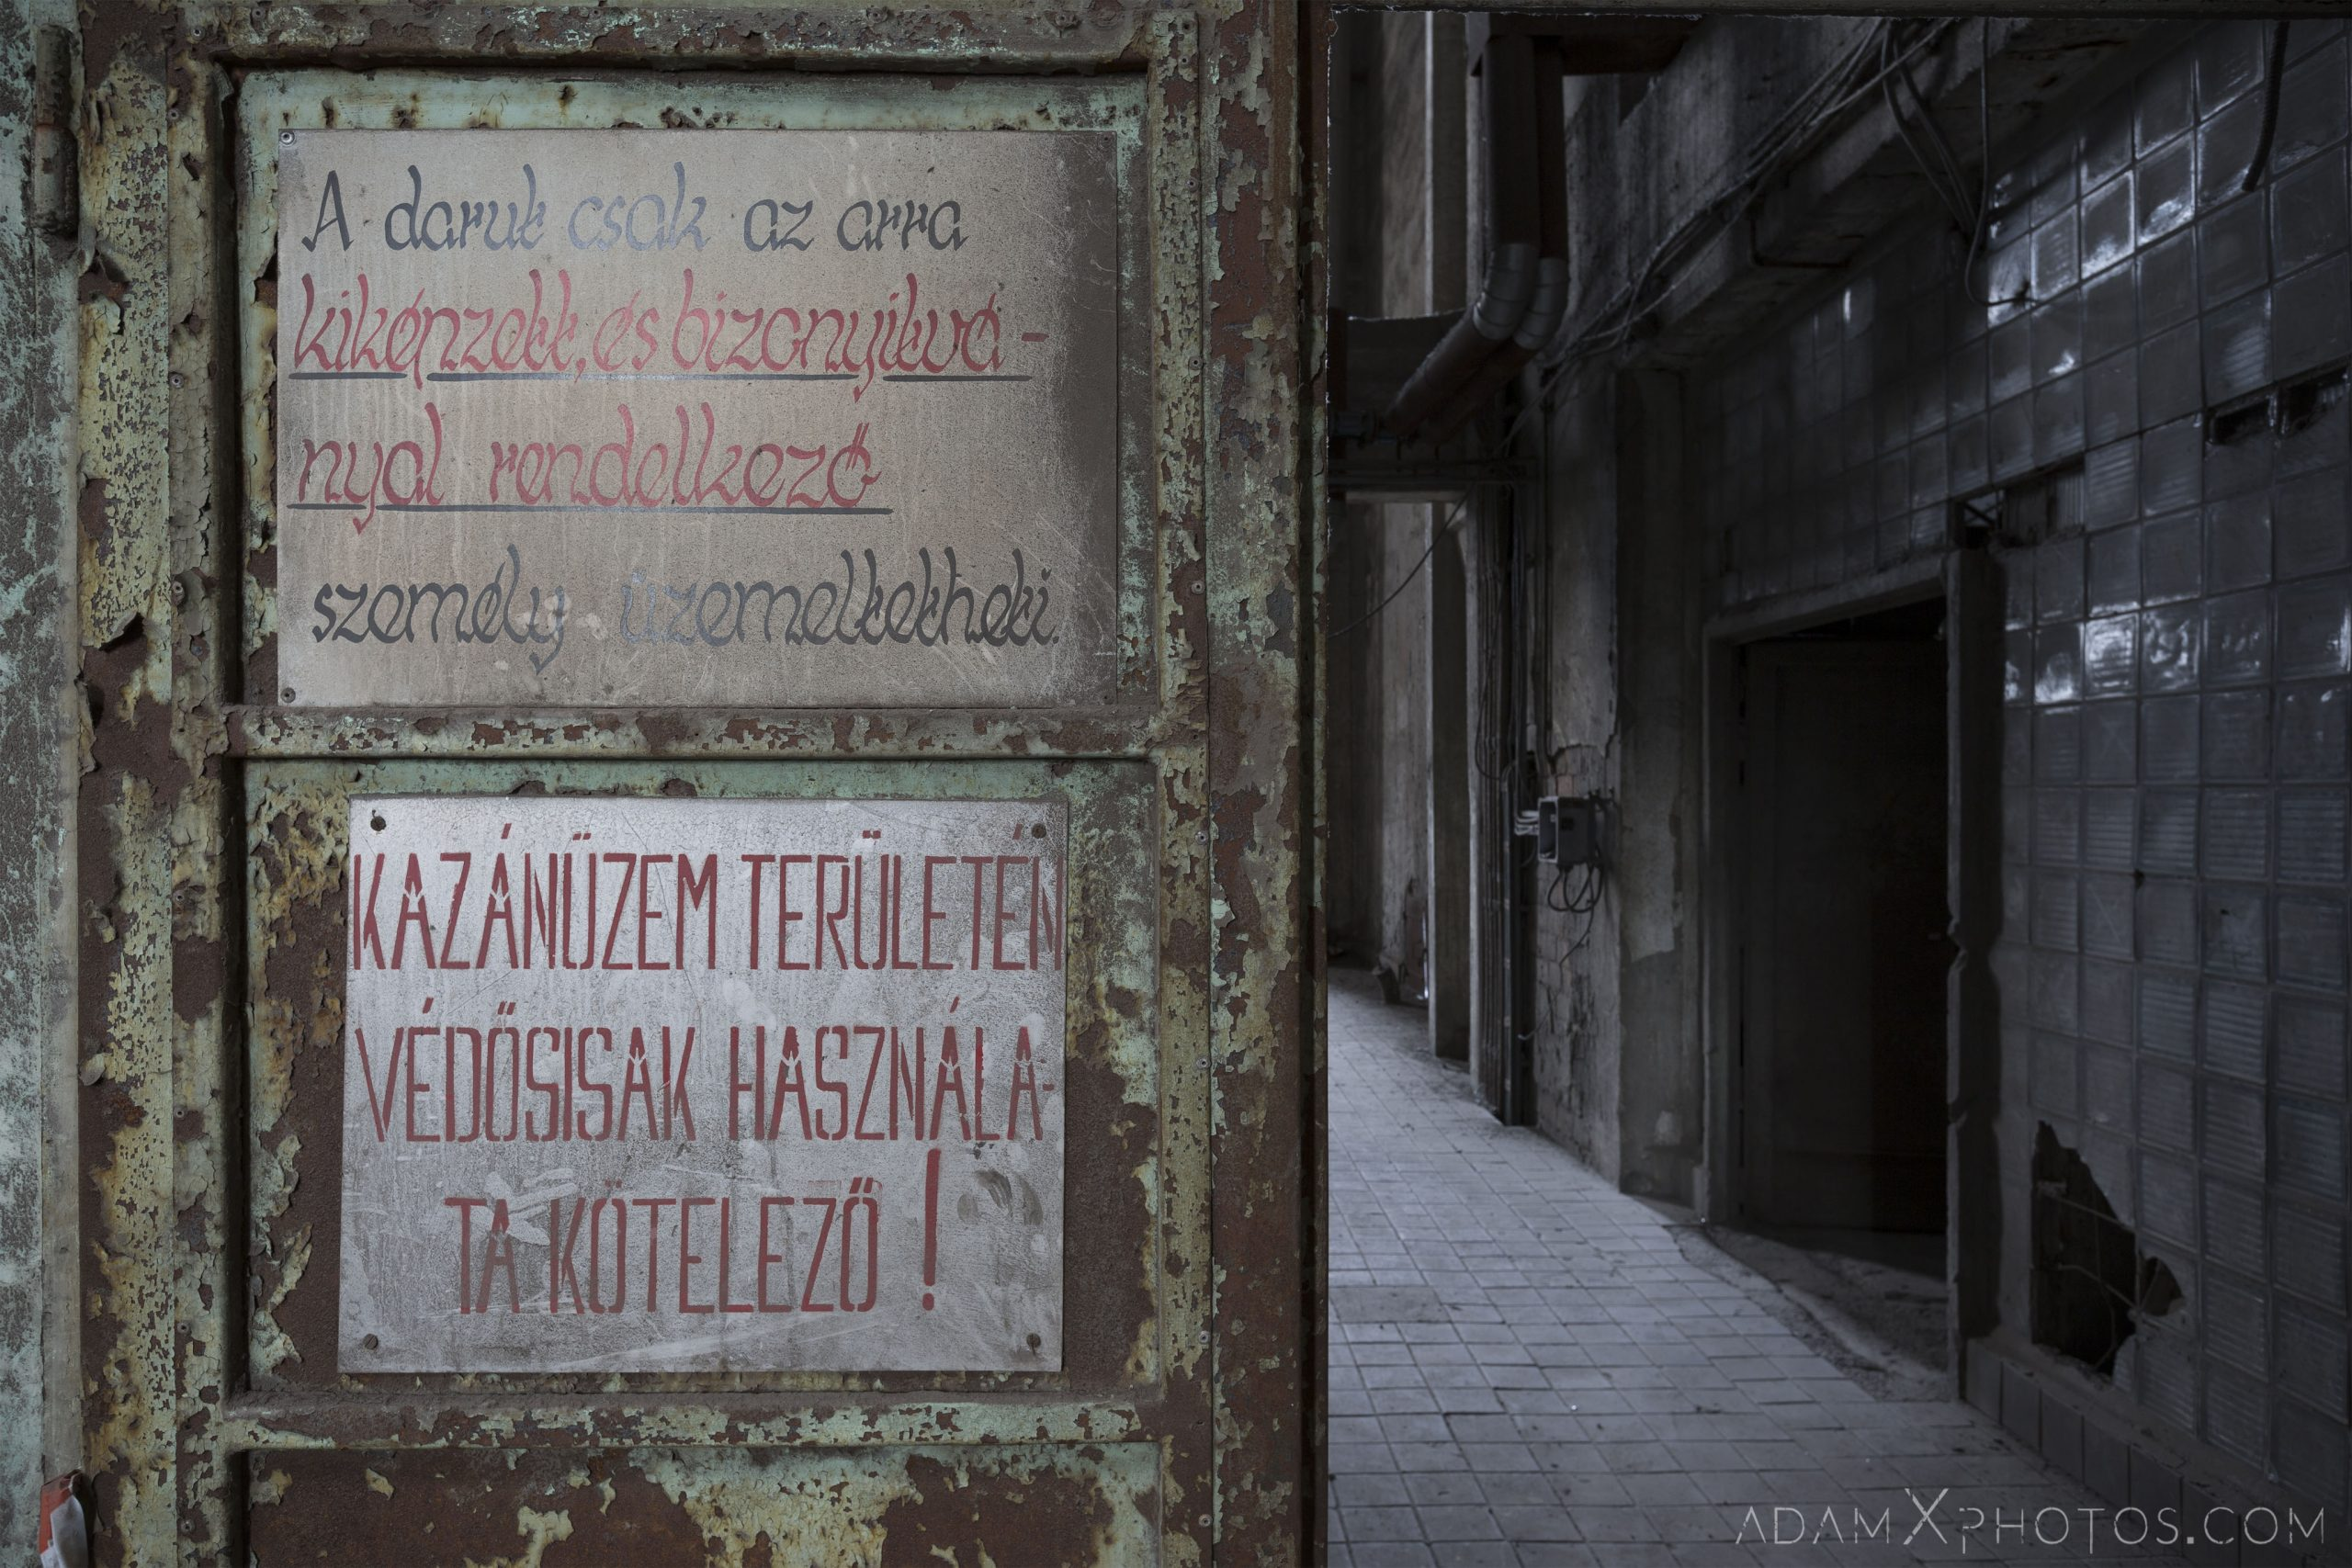 warning notice sign industry industrial rusty rusting Bladerunner Blade Runner 2049 Powerplant Inota Shephard's Power Plant Hungary Adam X Urbex Urban Exploration Access 2018 Abandoned decay ruins lost forgotten derelict location creepy haunting eerie security